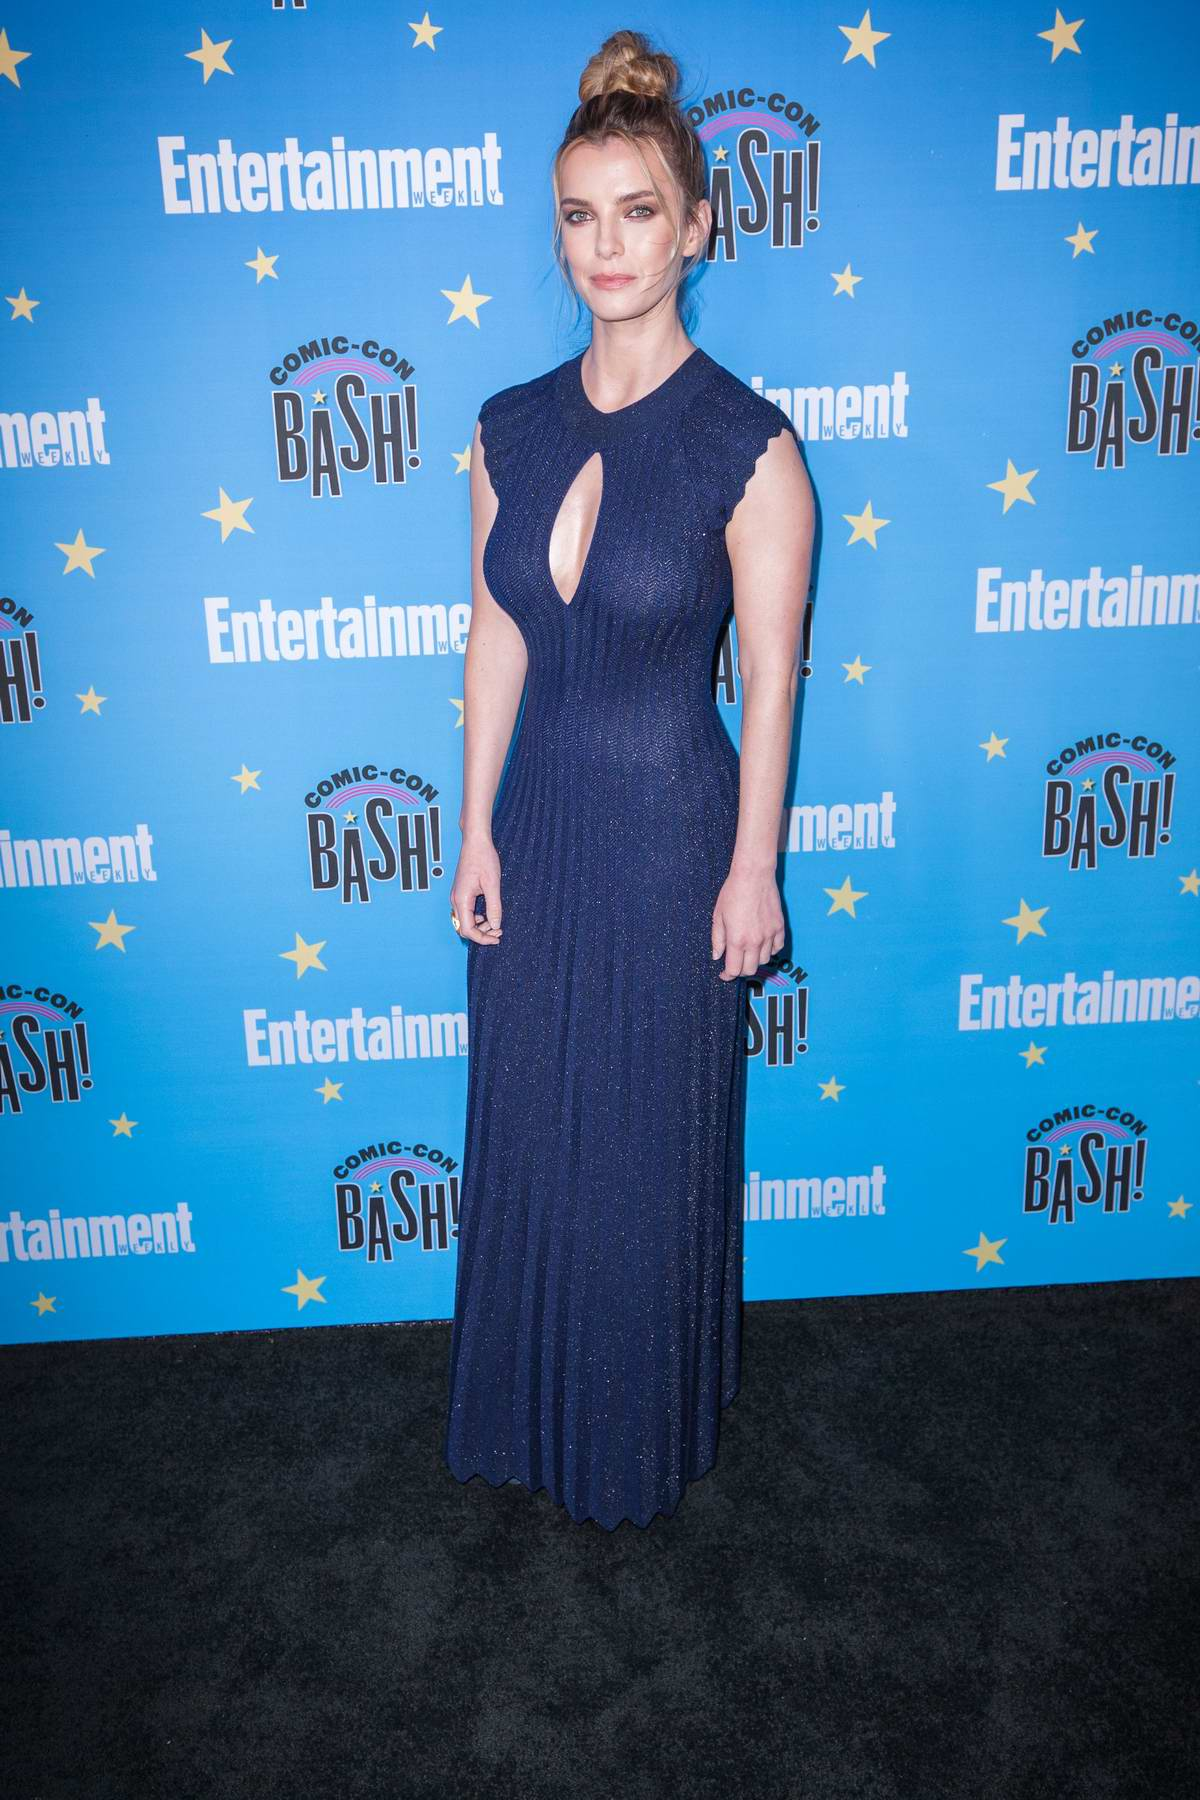 Betty Gilpin attends Entertainment Weekly's 2019 Comic-Con Bash held at FLOAT, Hard Rock Hotel in San Diego, California